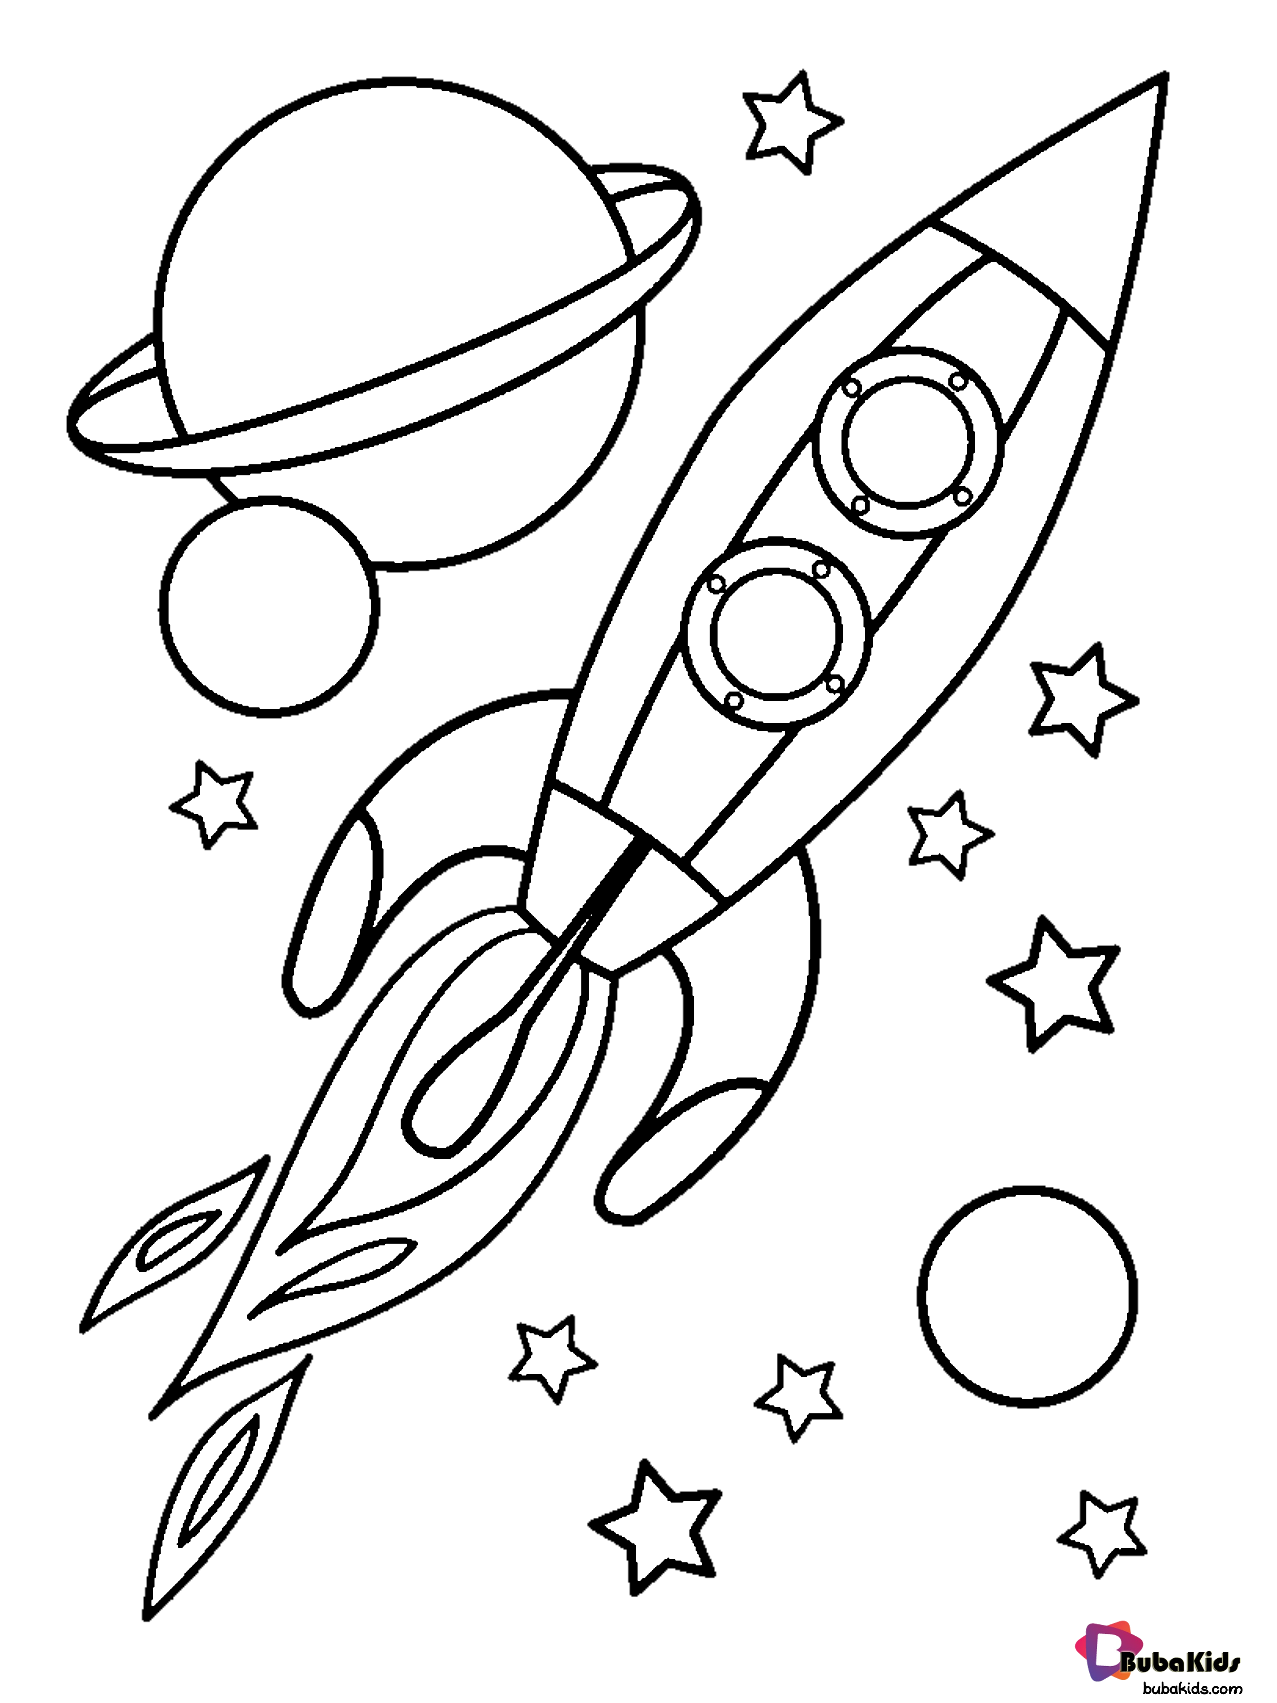 Planets Stars And Rocket In Outer Space Coloring Page Collection Of Cartoon Coloring Pages For In 2020 Planet Coloring Pages Space Coloring Pages Space Coloring Sheet